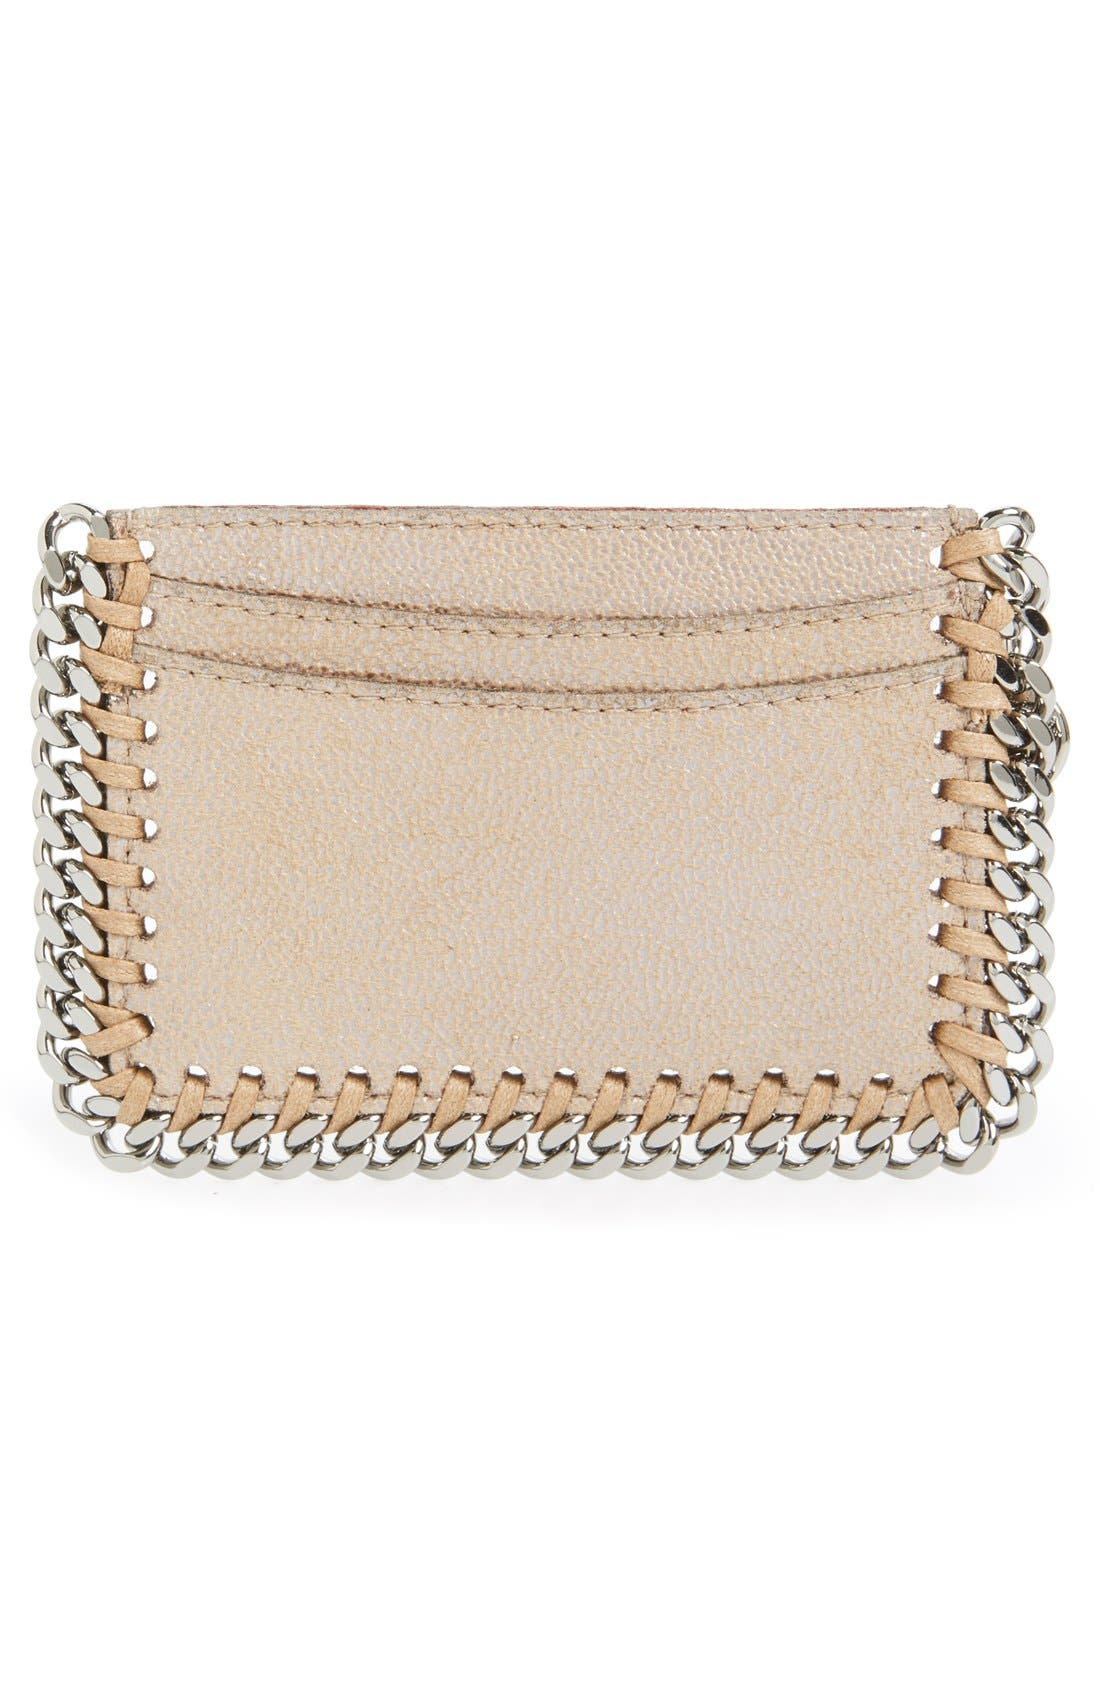 'Falabella - Shaggy Deer' Card Case,                             Alternate thumbnail 2, color,